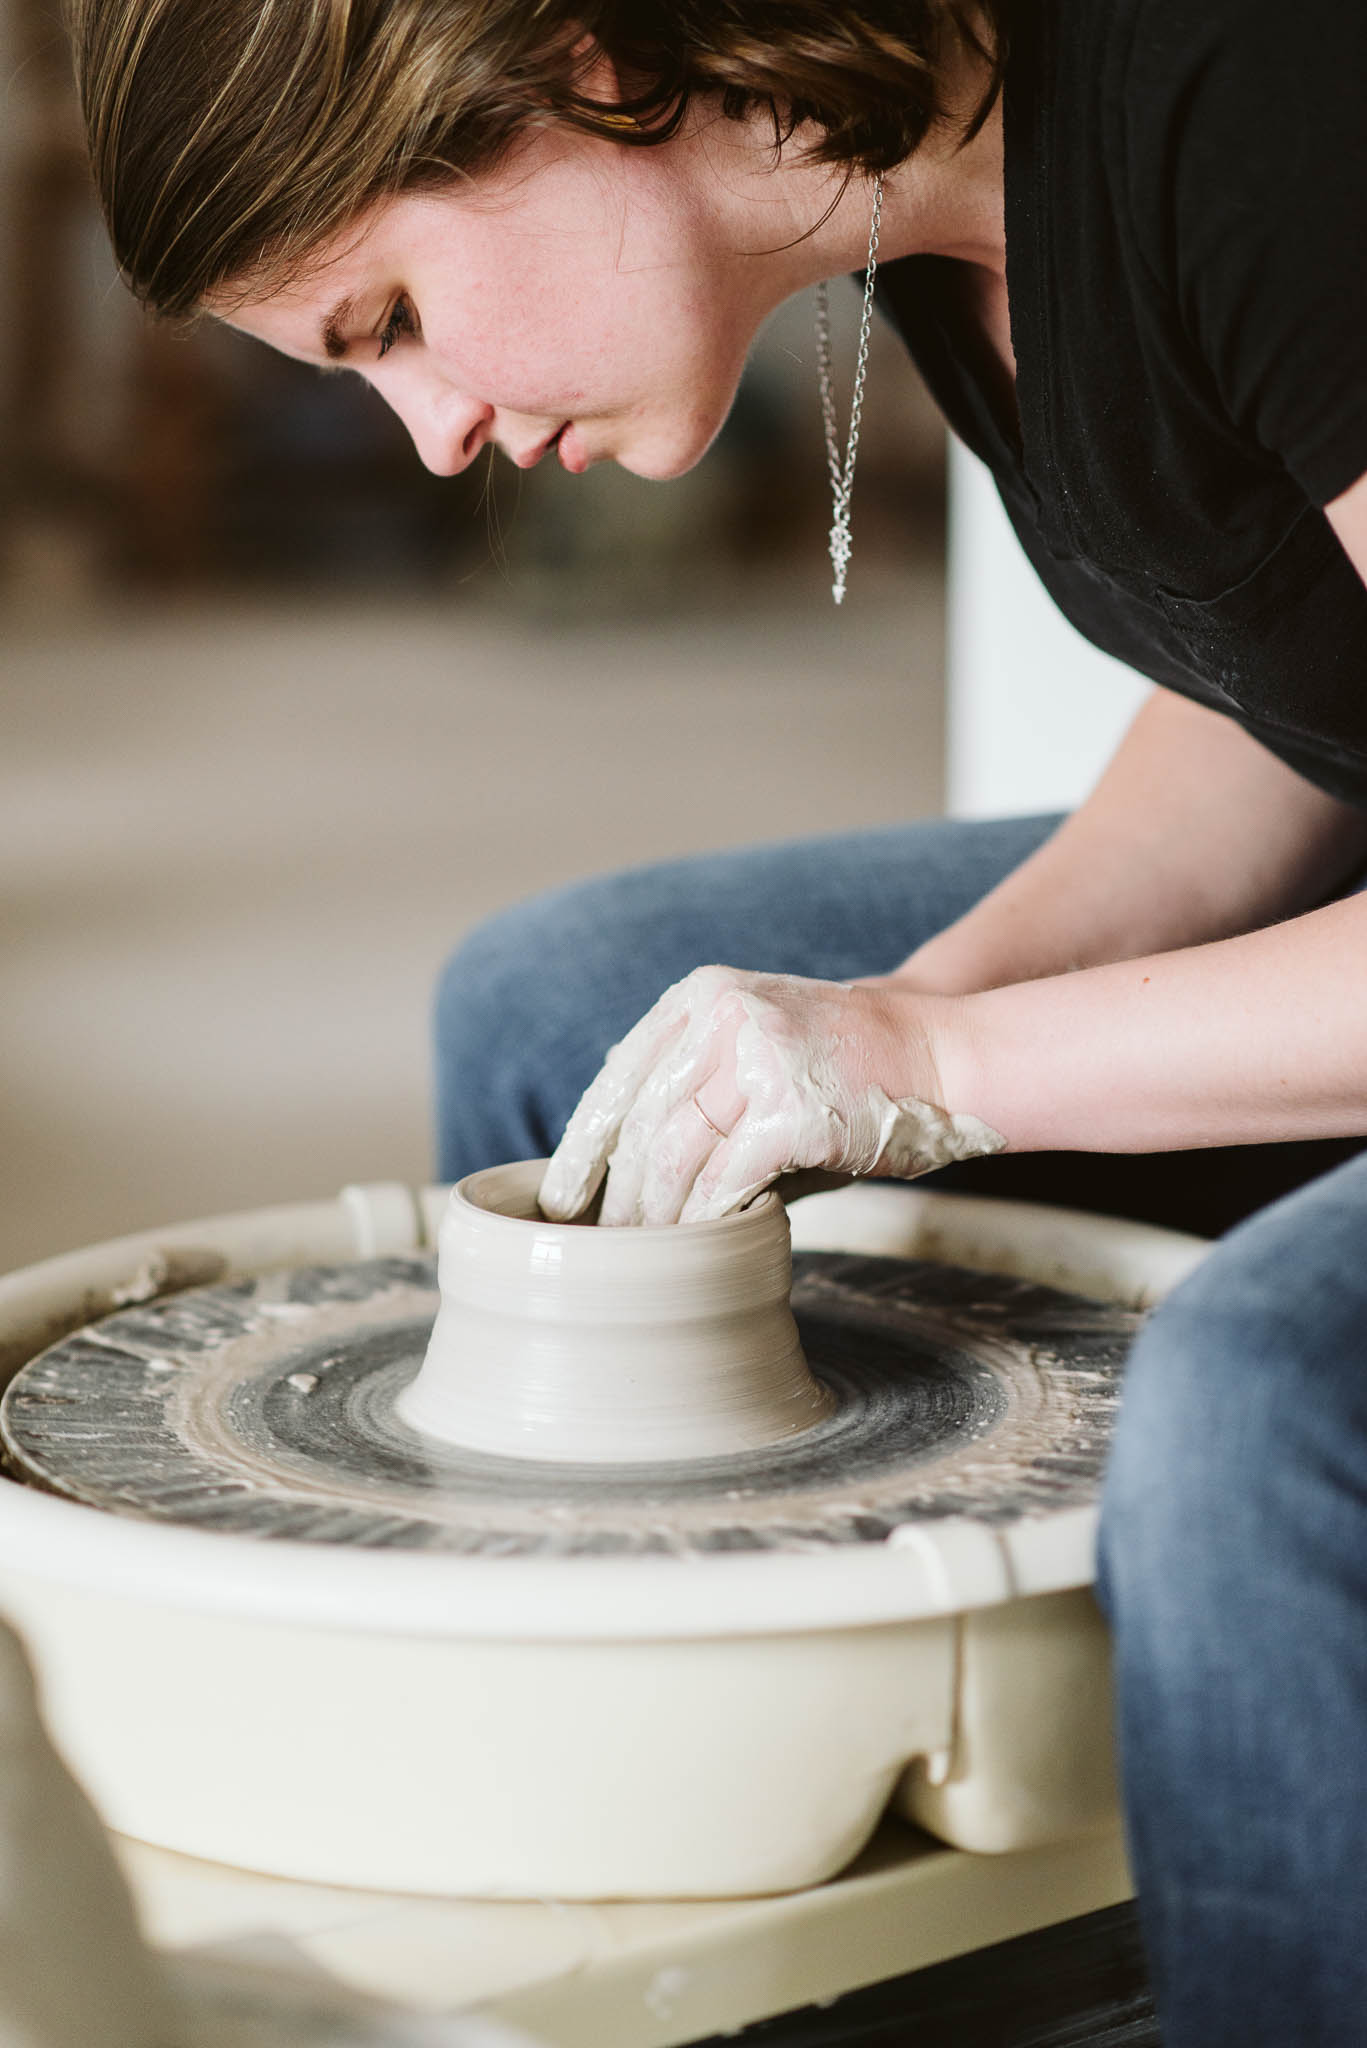 Kirsten-Smith-Photography-Reagan-Ashley-Pottery45.jpg